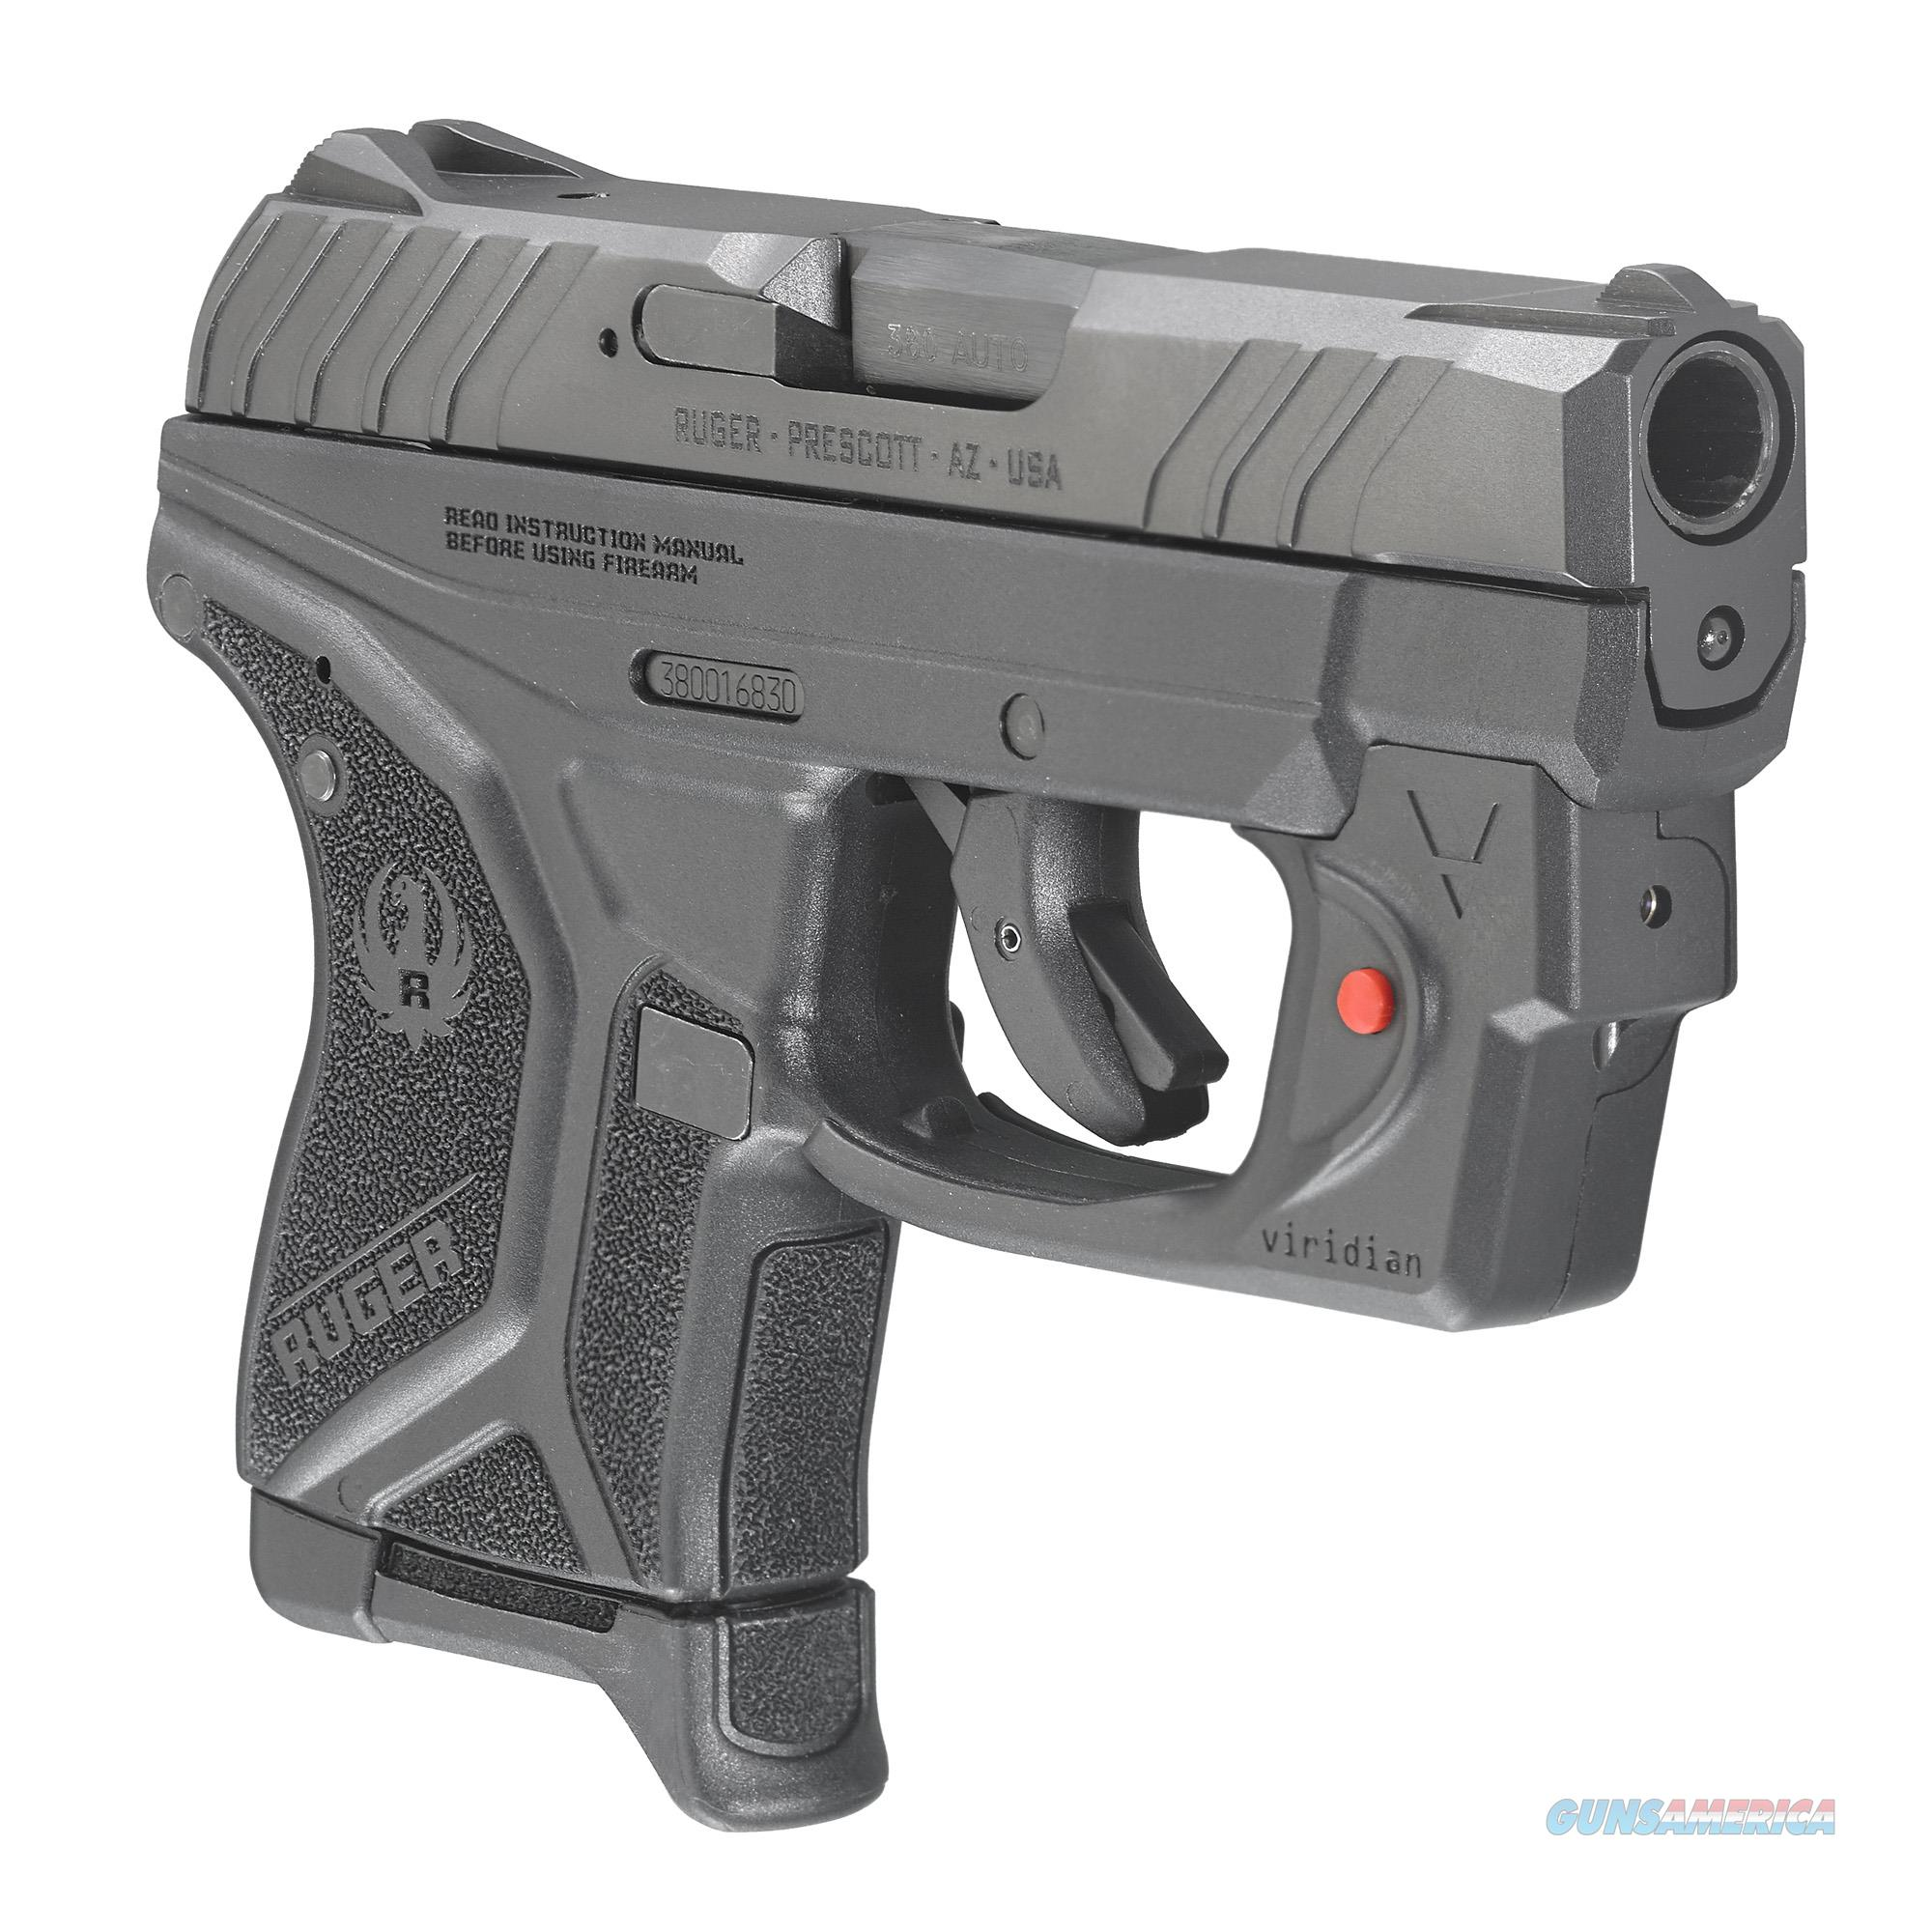 "Ruger LCP II with Viridian Laser .380 ACP 2.75"" 6+1 - New in Box!  Guns > Pistols > Ruger Semi-Auto Pistols > LCP"